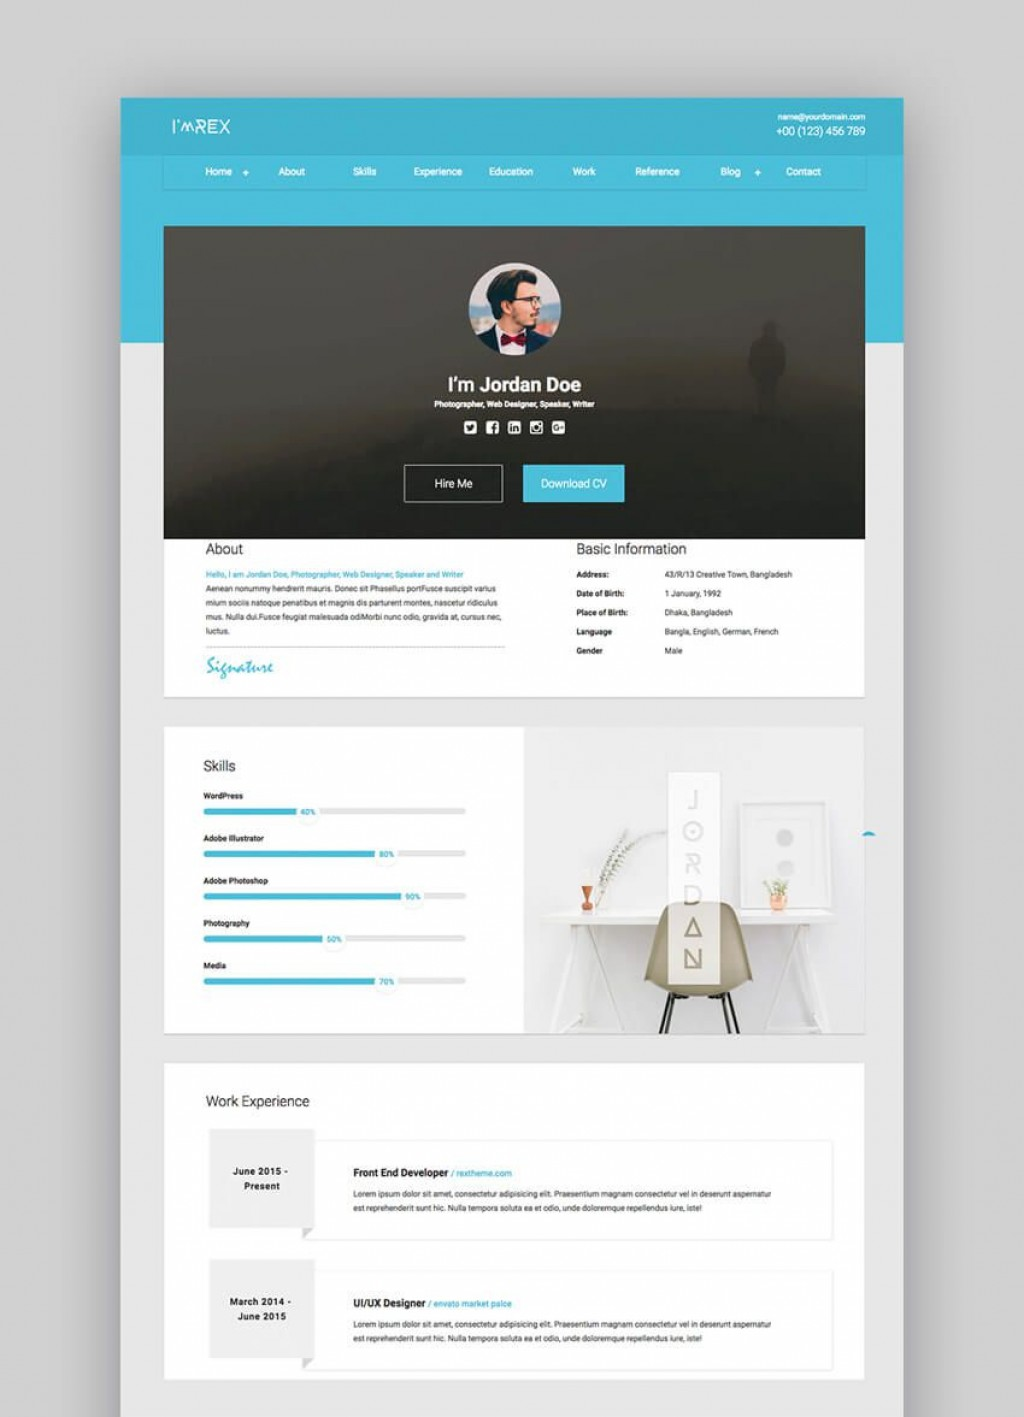 005 Fascinating Free Html Resume Template Inspiration  Html5 Best Cv Desmond / DownloadLarge